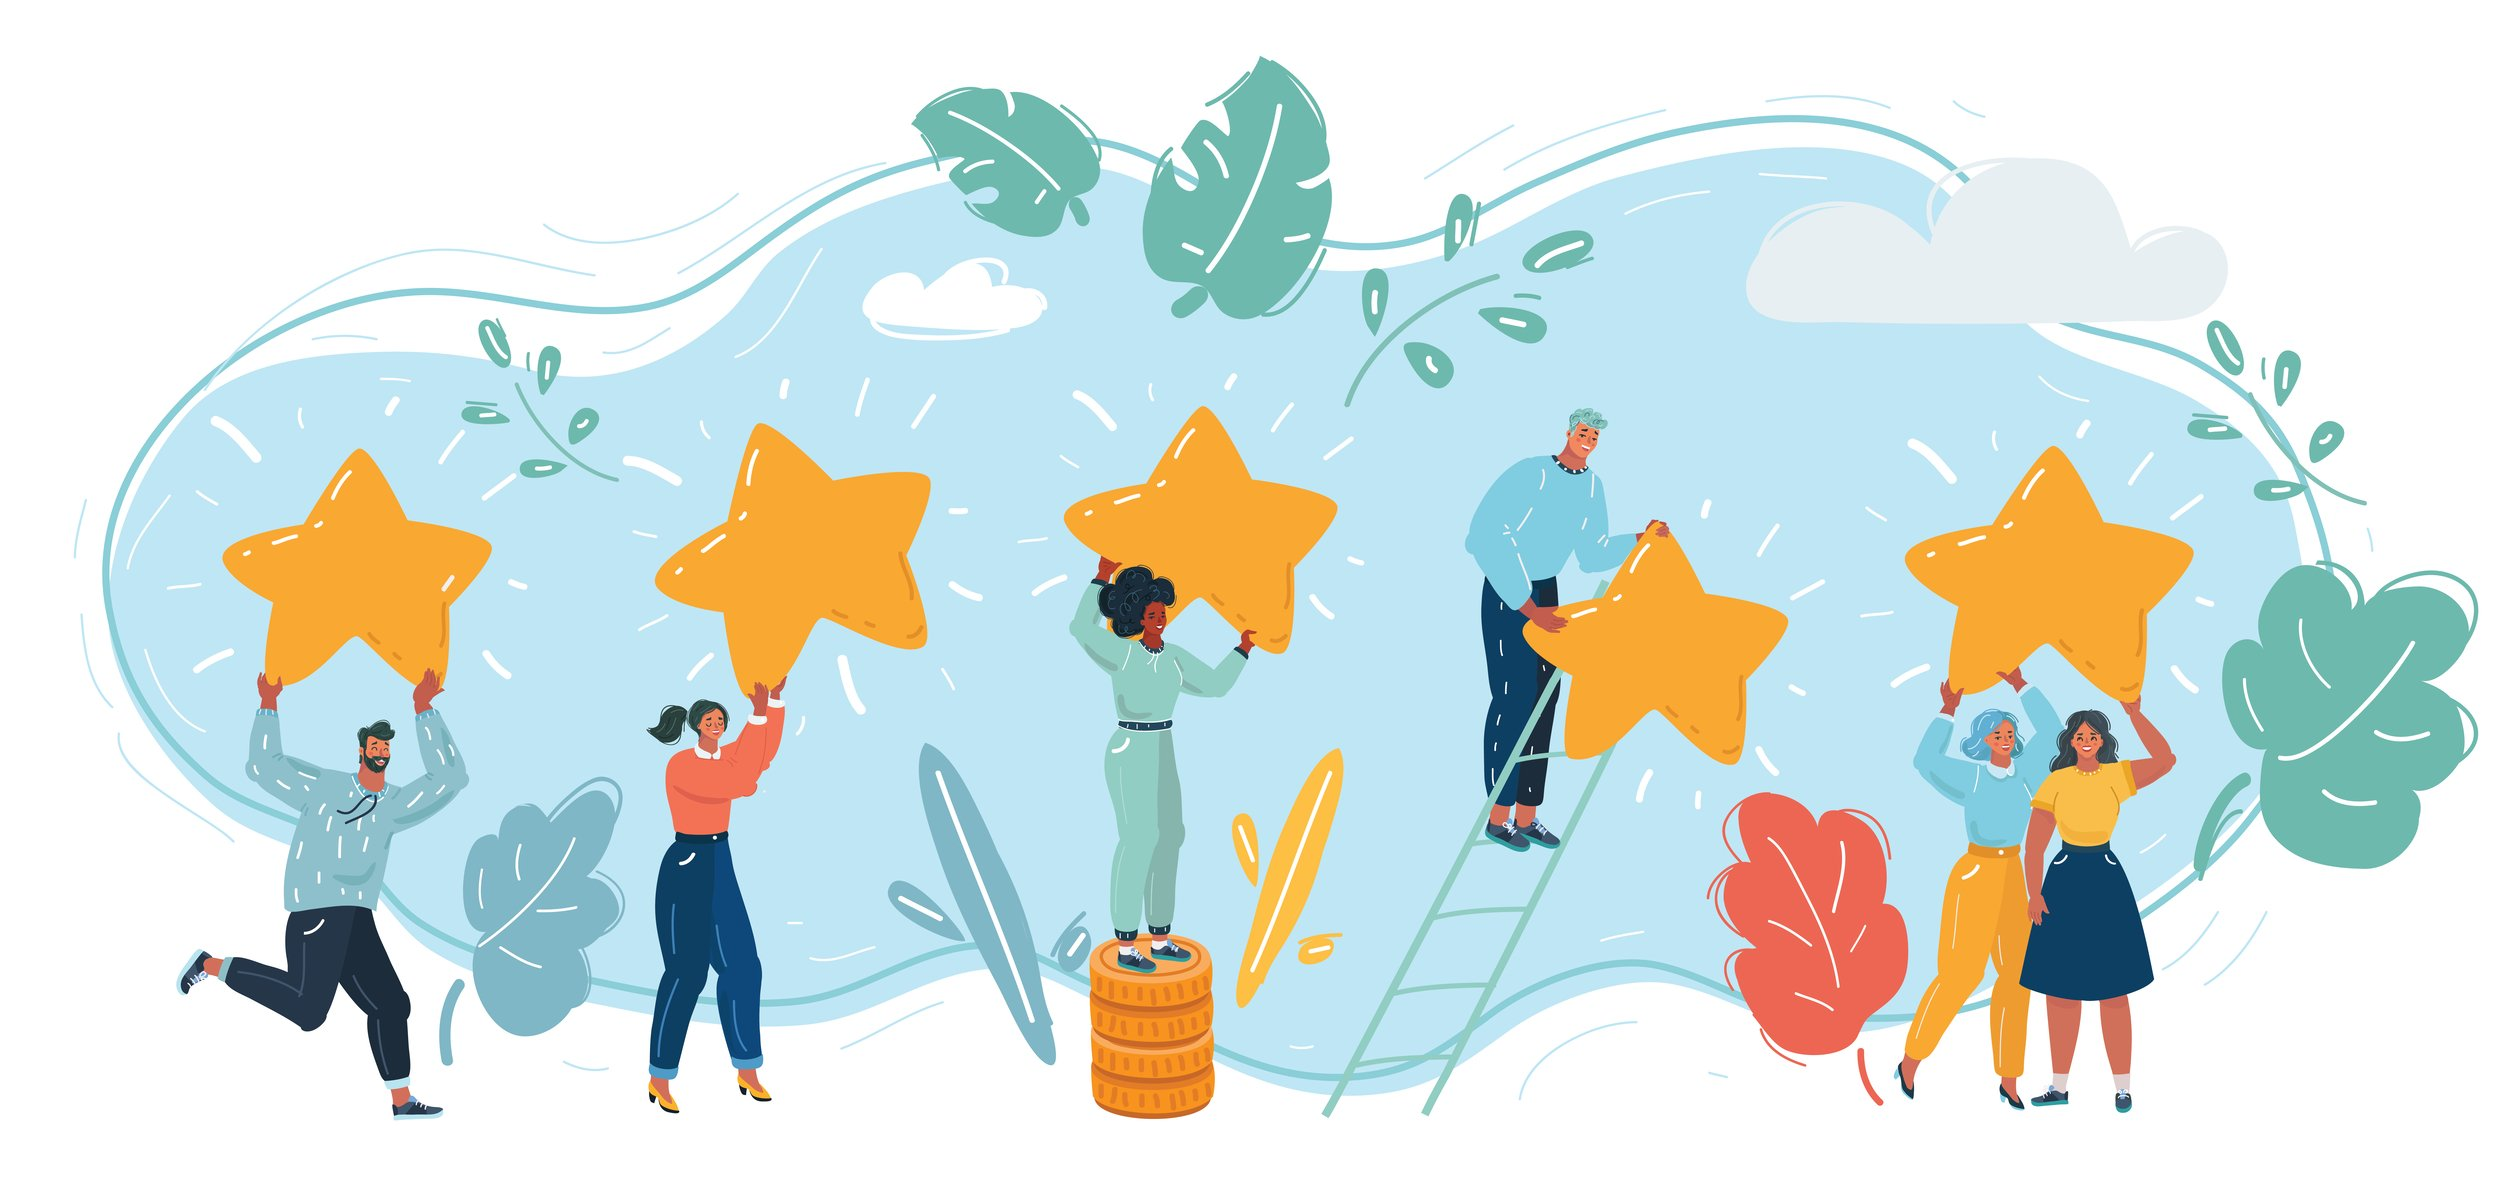 Celebrating Customer Service Successes illustration